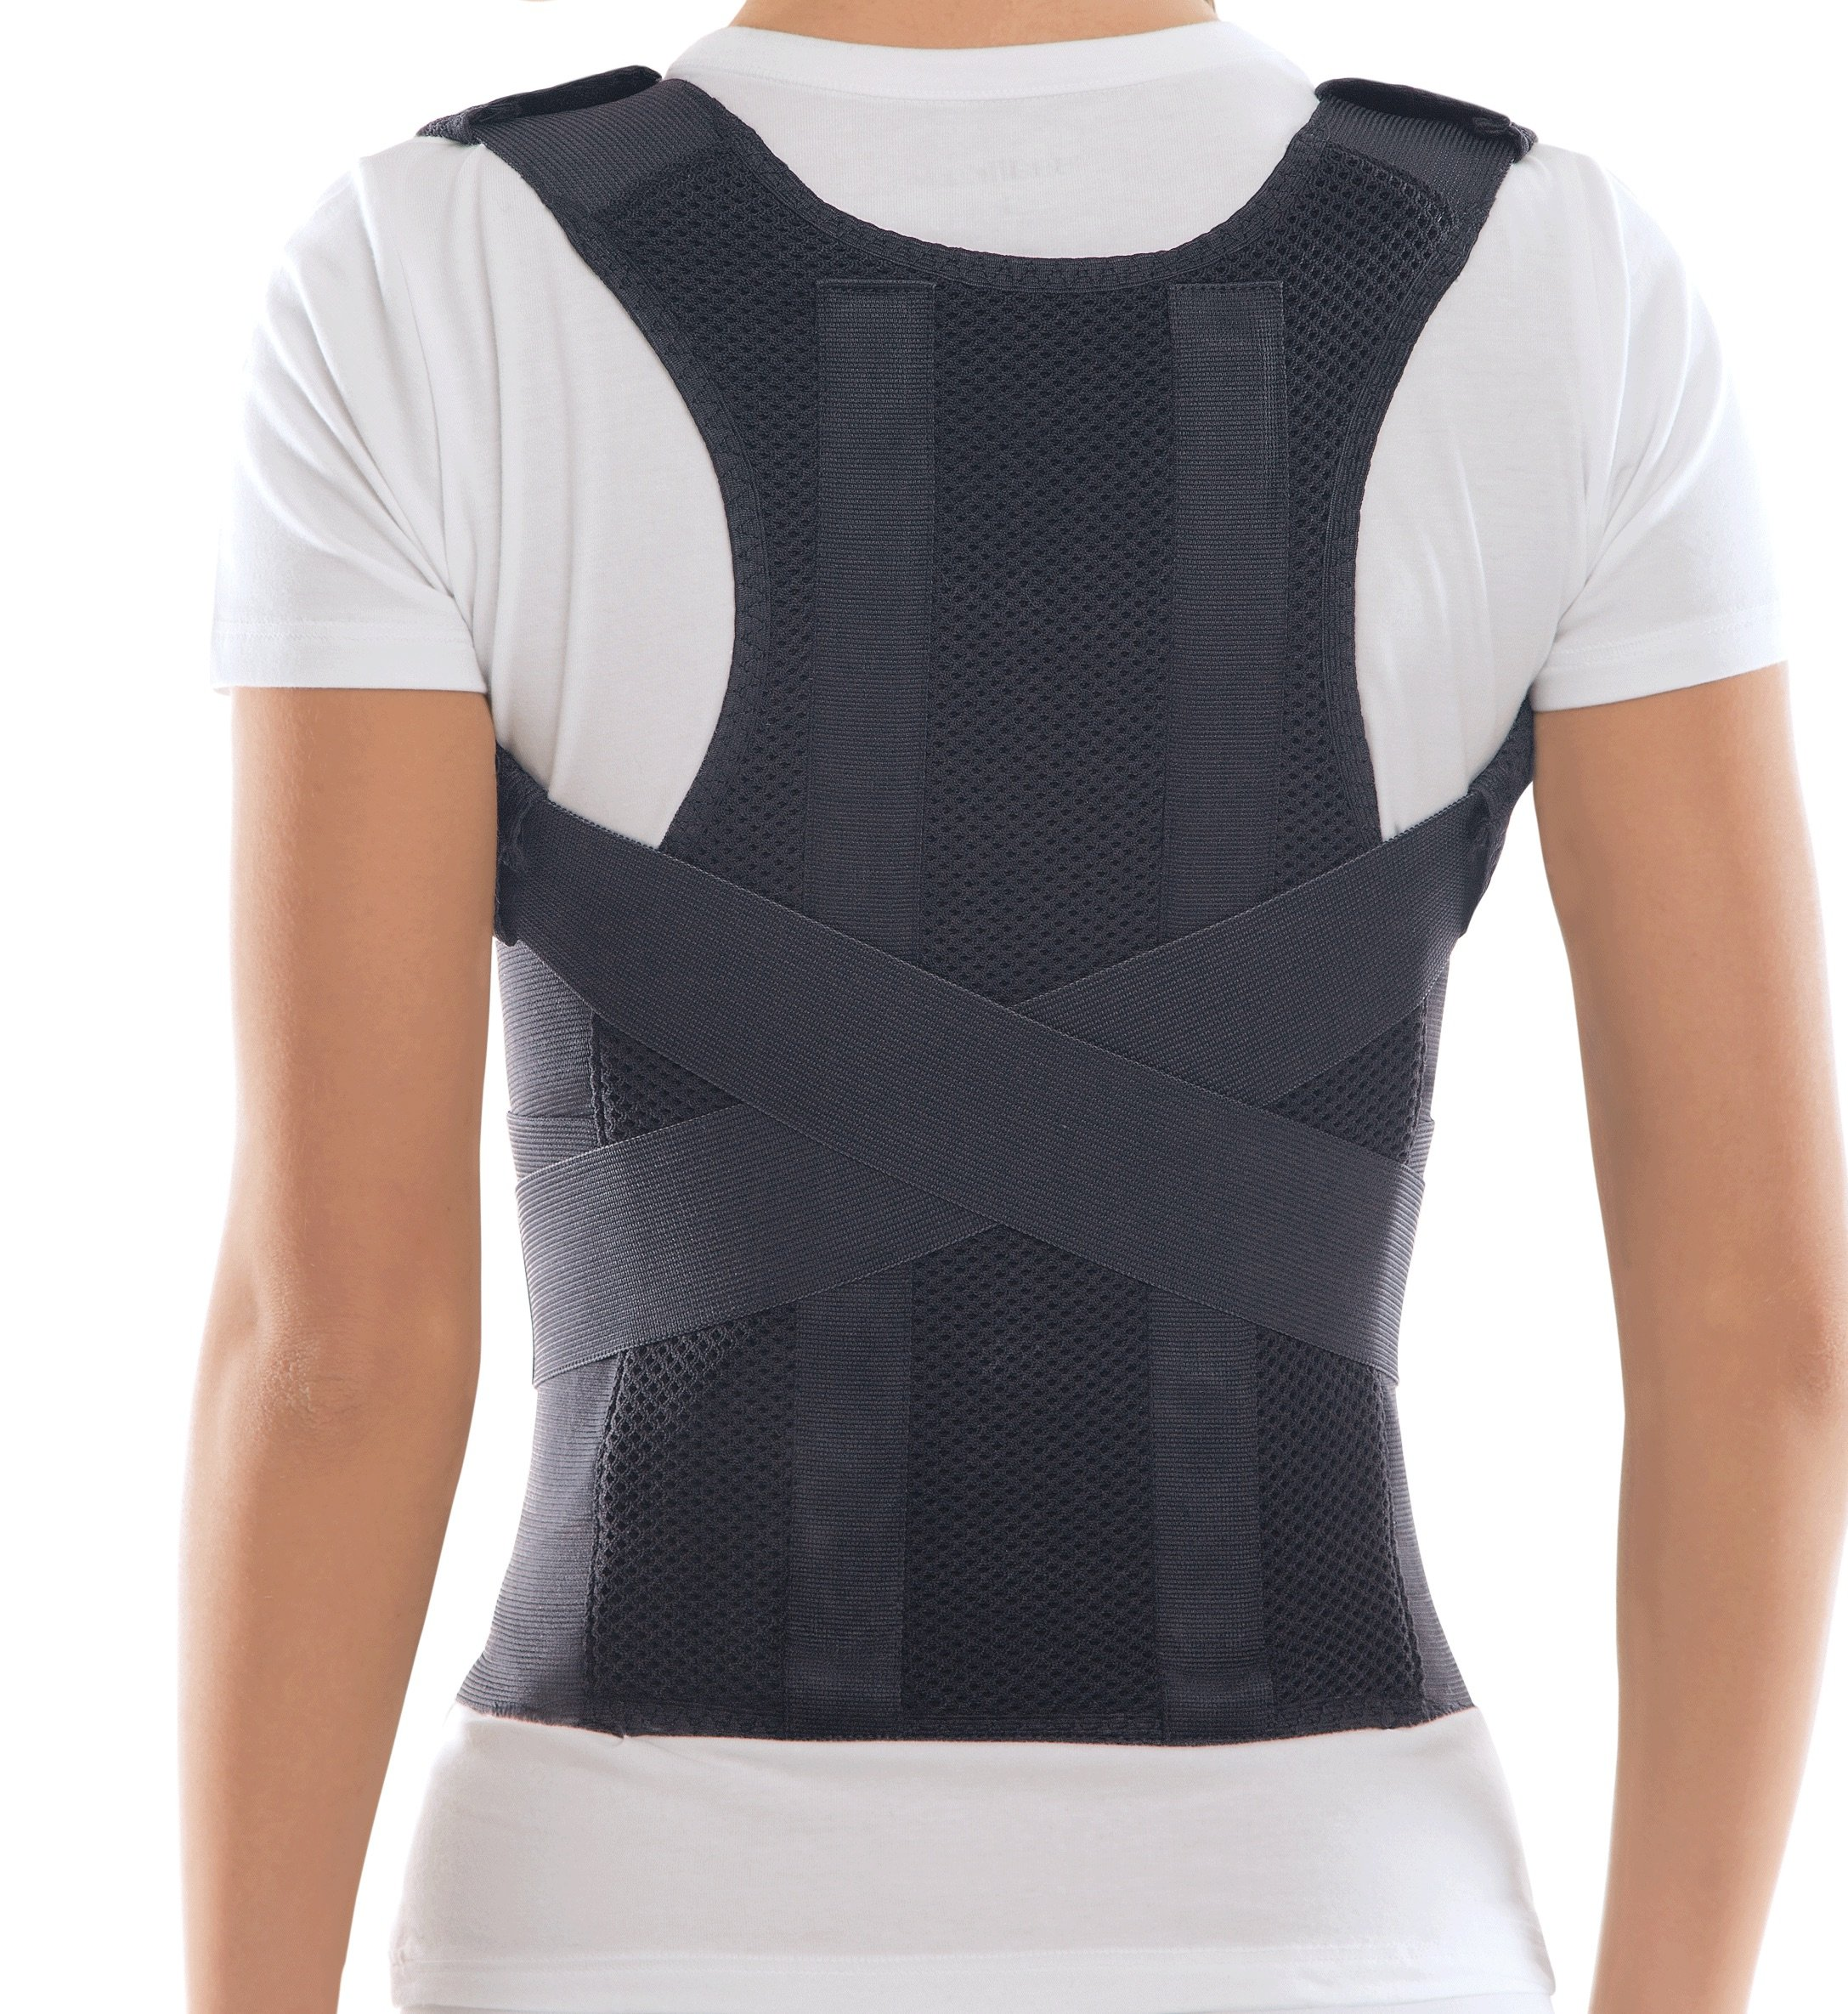 TOROS-GROUP Comfort Posture Corrector Shoulder and Back Brace Lumbar Support Fully Adjustable for Men and Women (Medium) by TOROS-GROUP